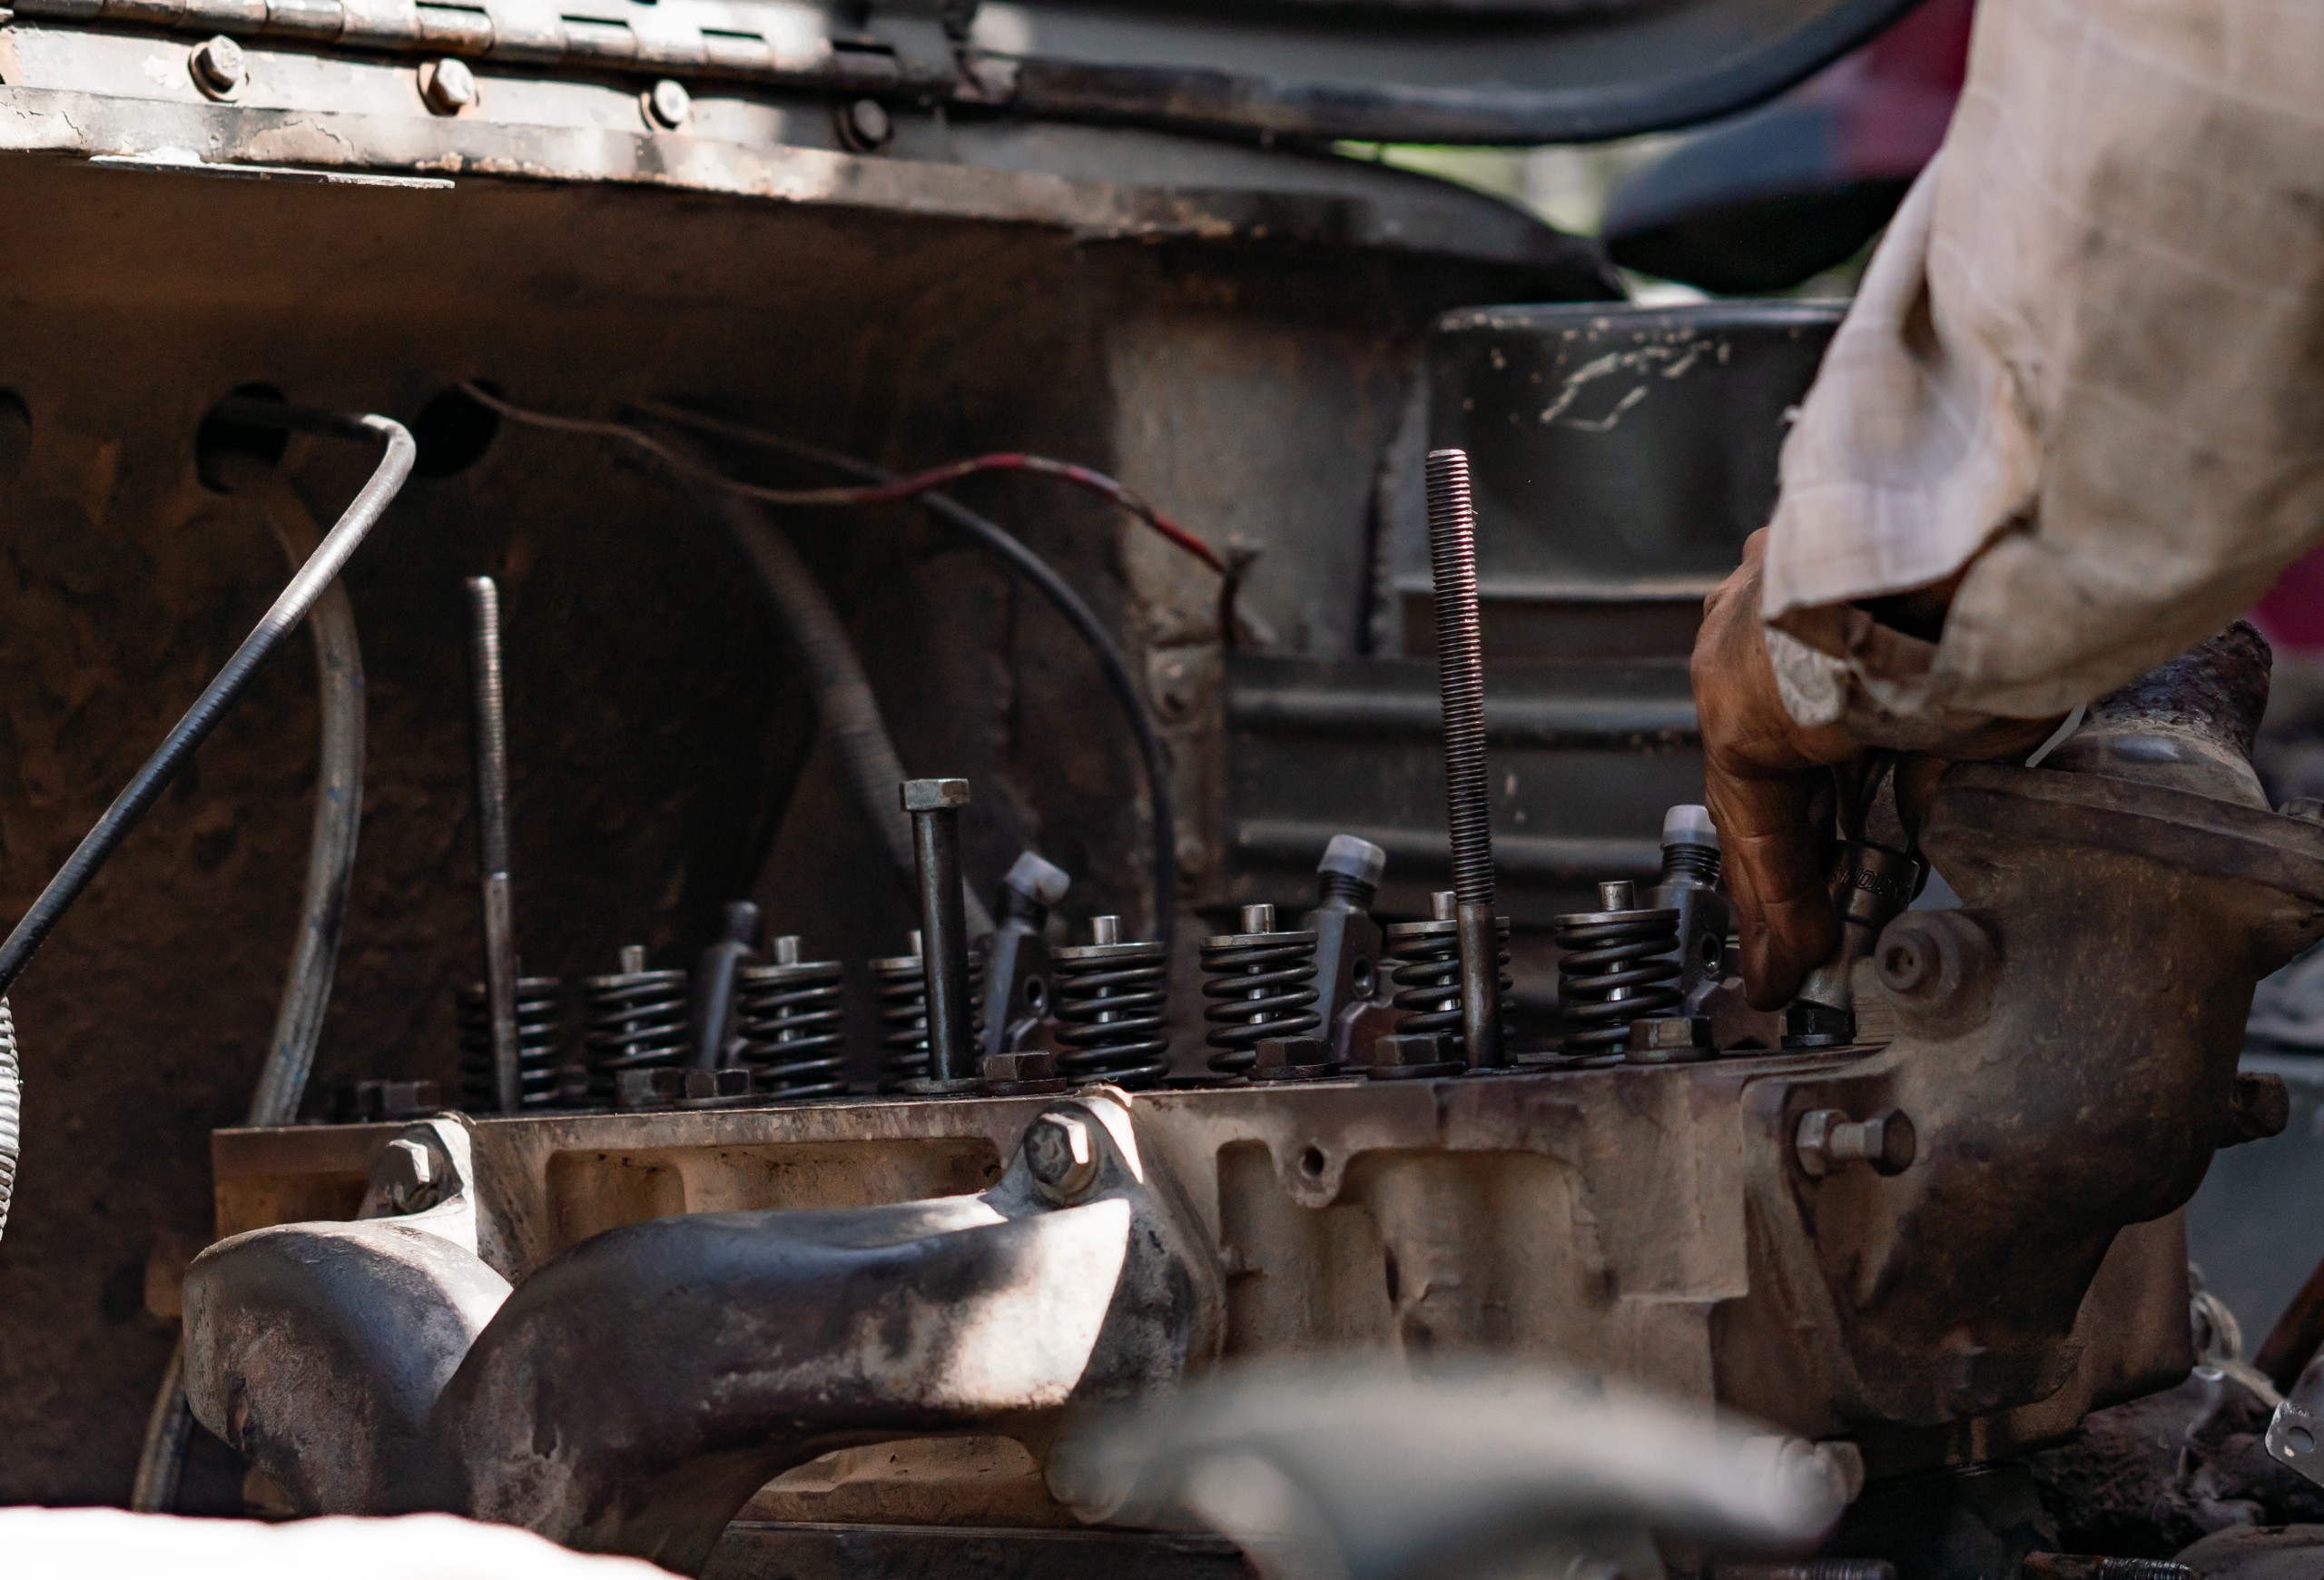 A man Repairing and Fixing Car Engine